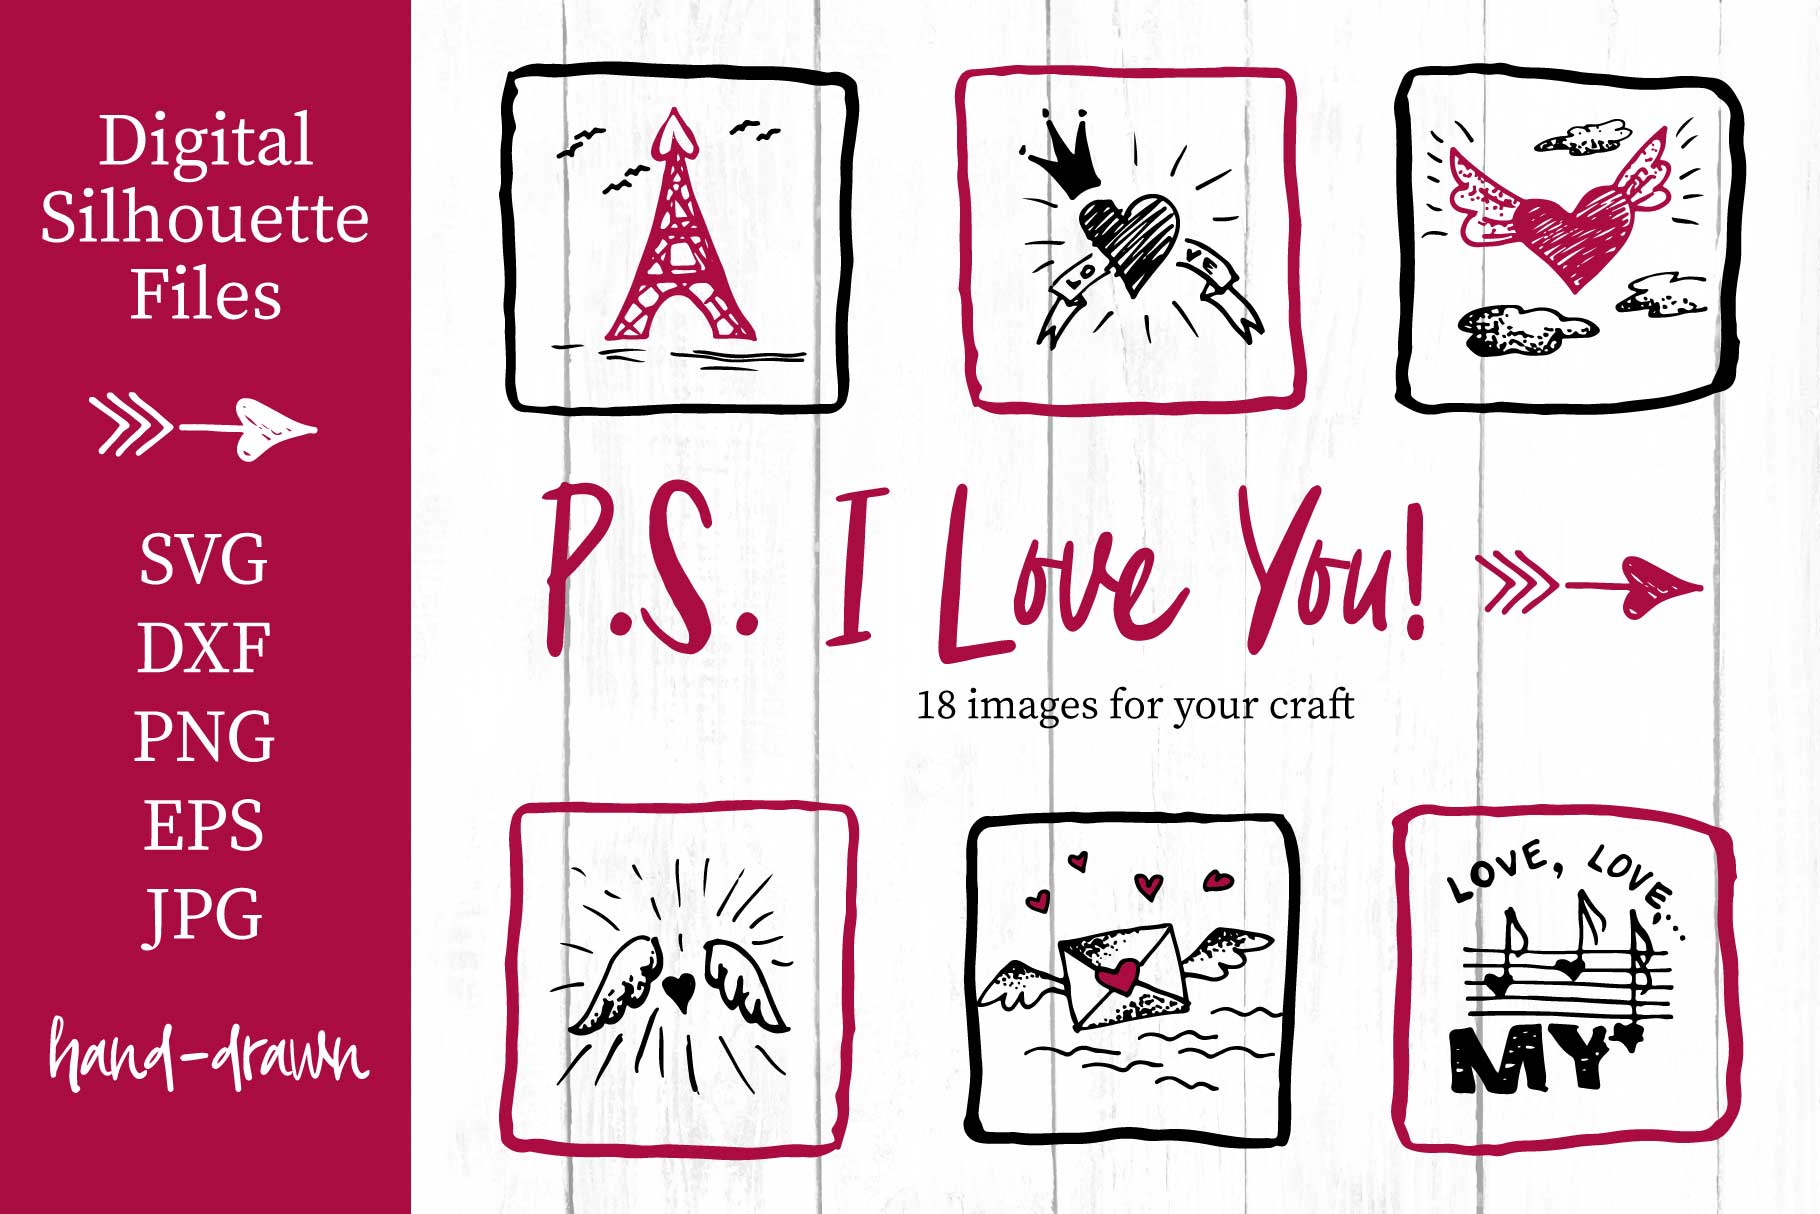 Lovely valentines day set - #5 SVG collection example image 1